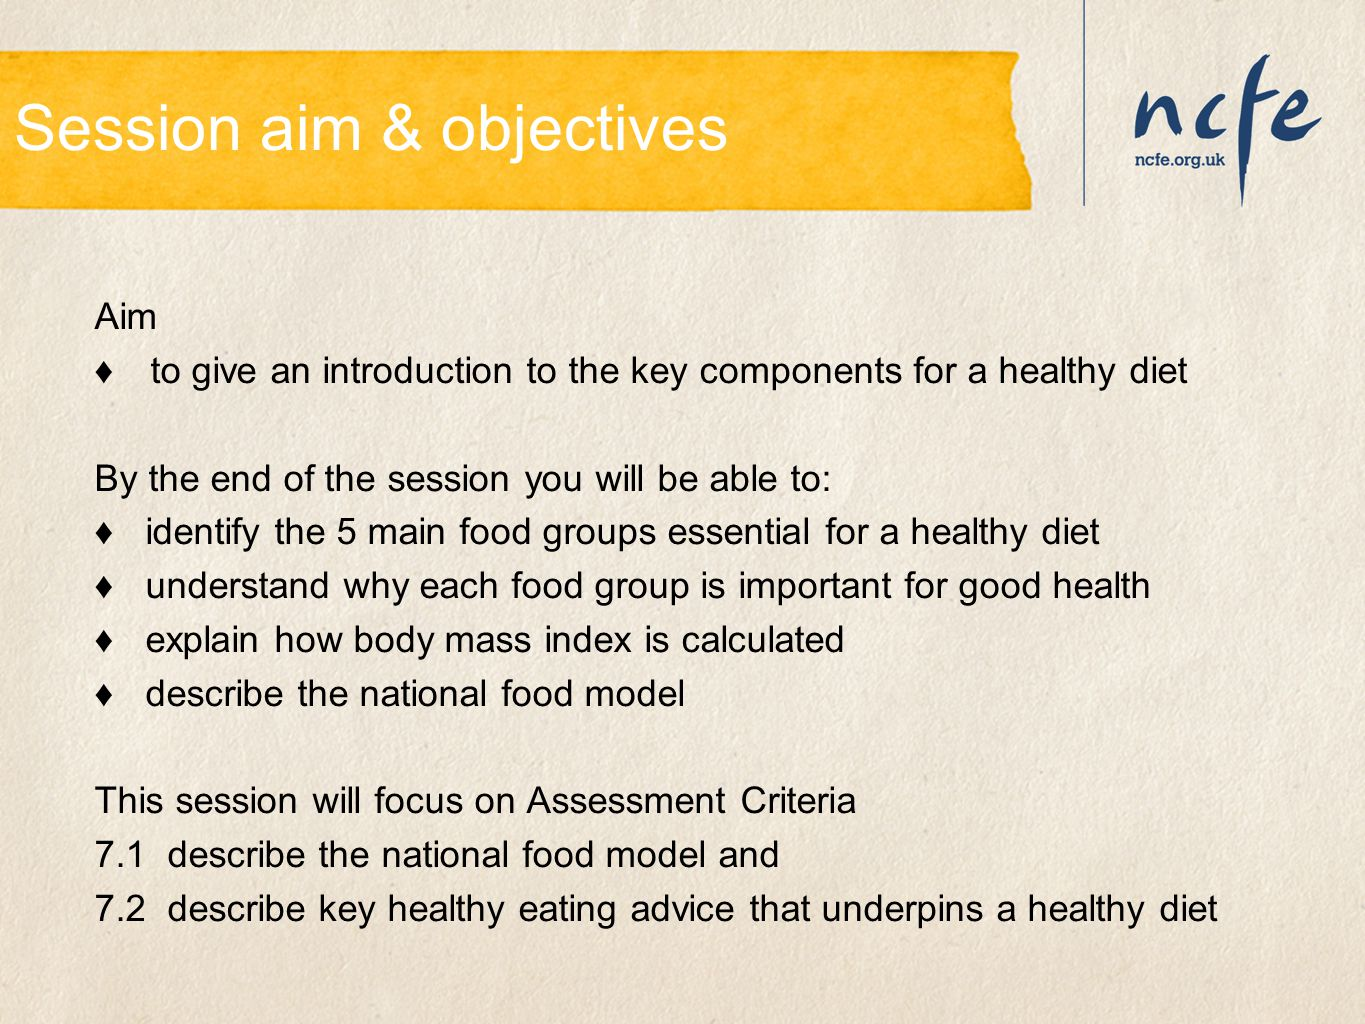 Session aim & objectives